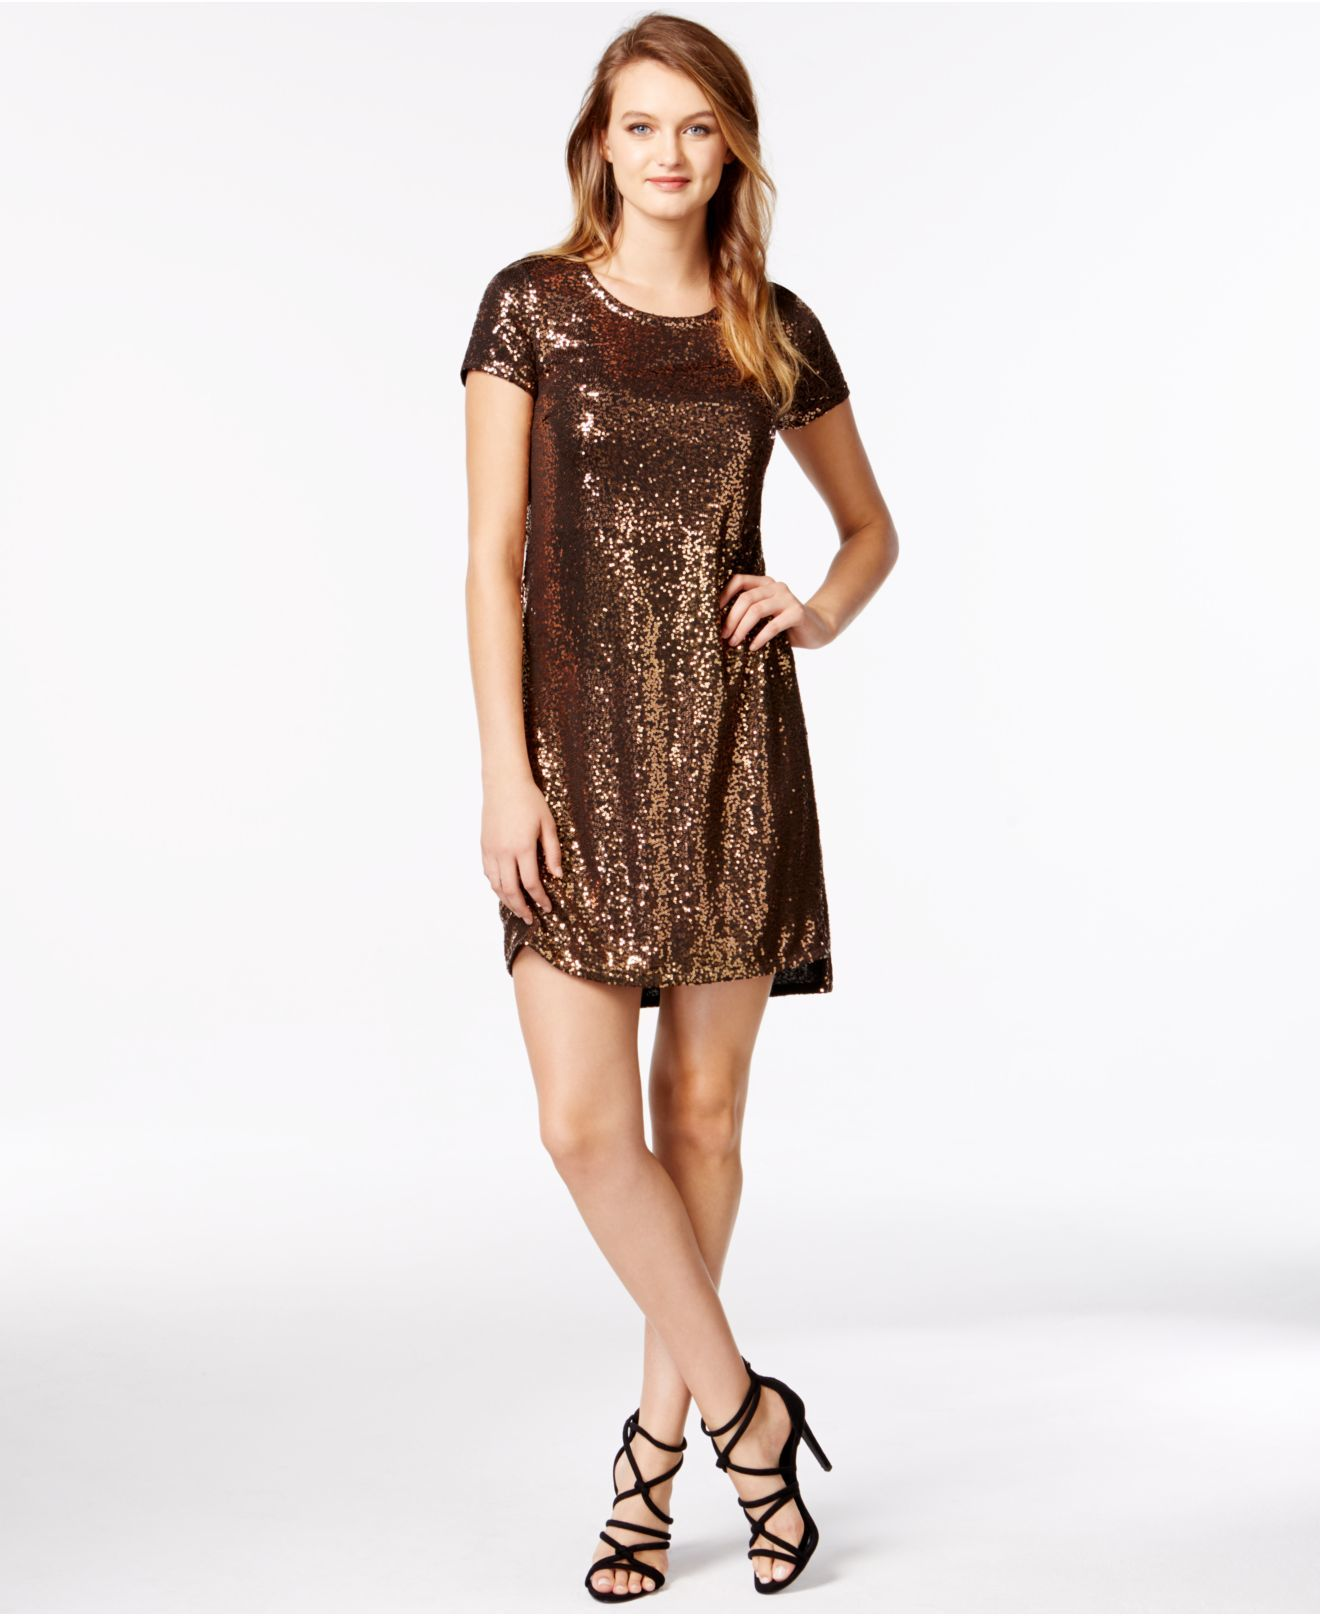 Kensie sequin dress long sleeve best dress ideas pinterest